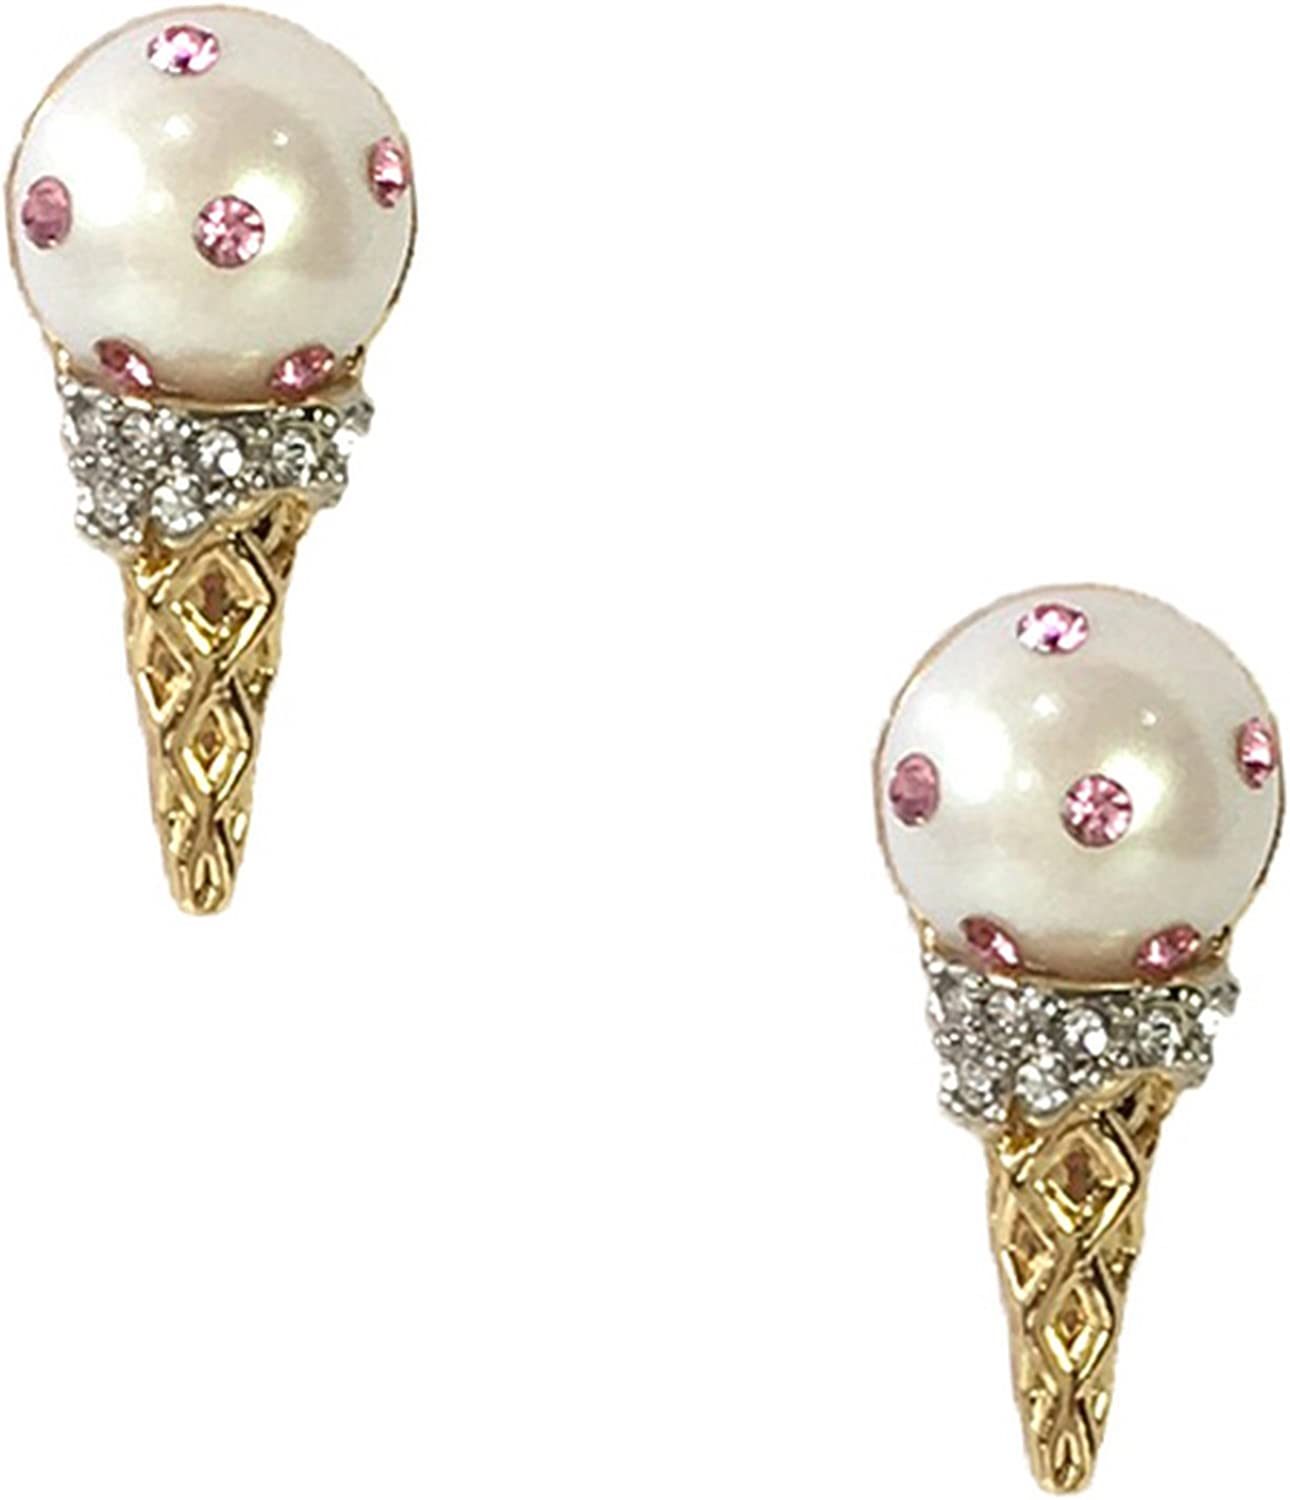 Kate Spade Carnival Nights Ice Cream Cone Studs Earrings, Cream Multi